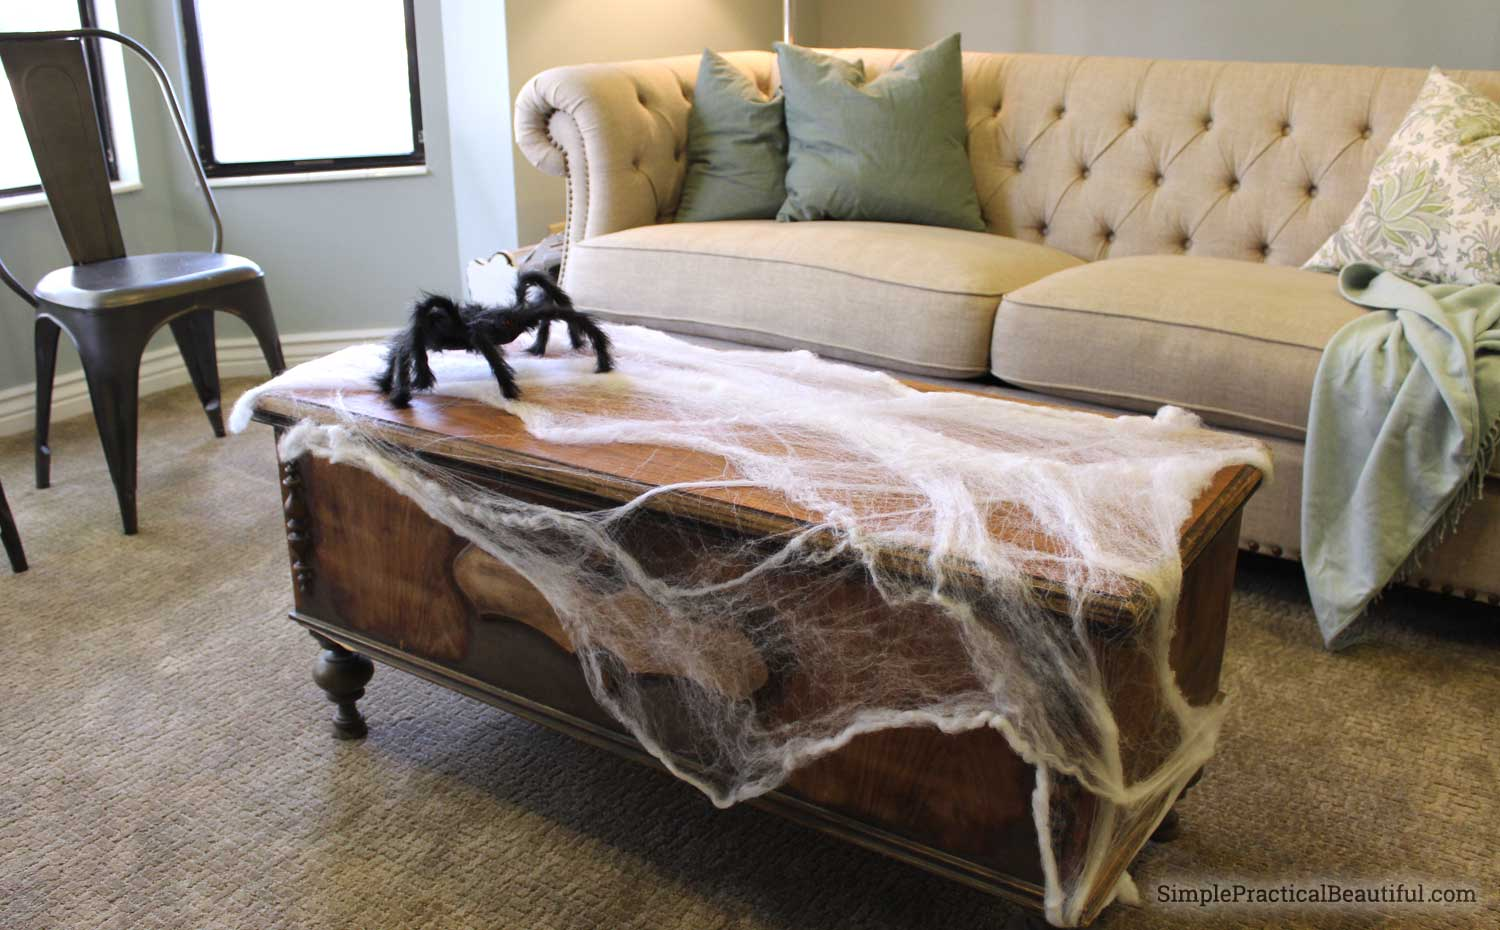 Tips and ideas for classy, elegant, and spooky Halloween decor and decorations